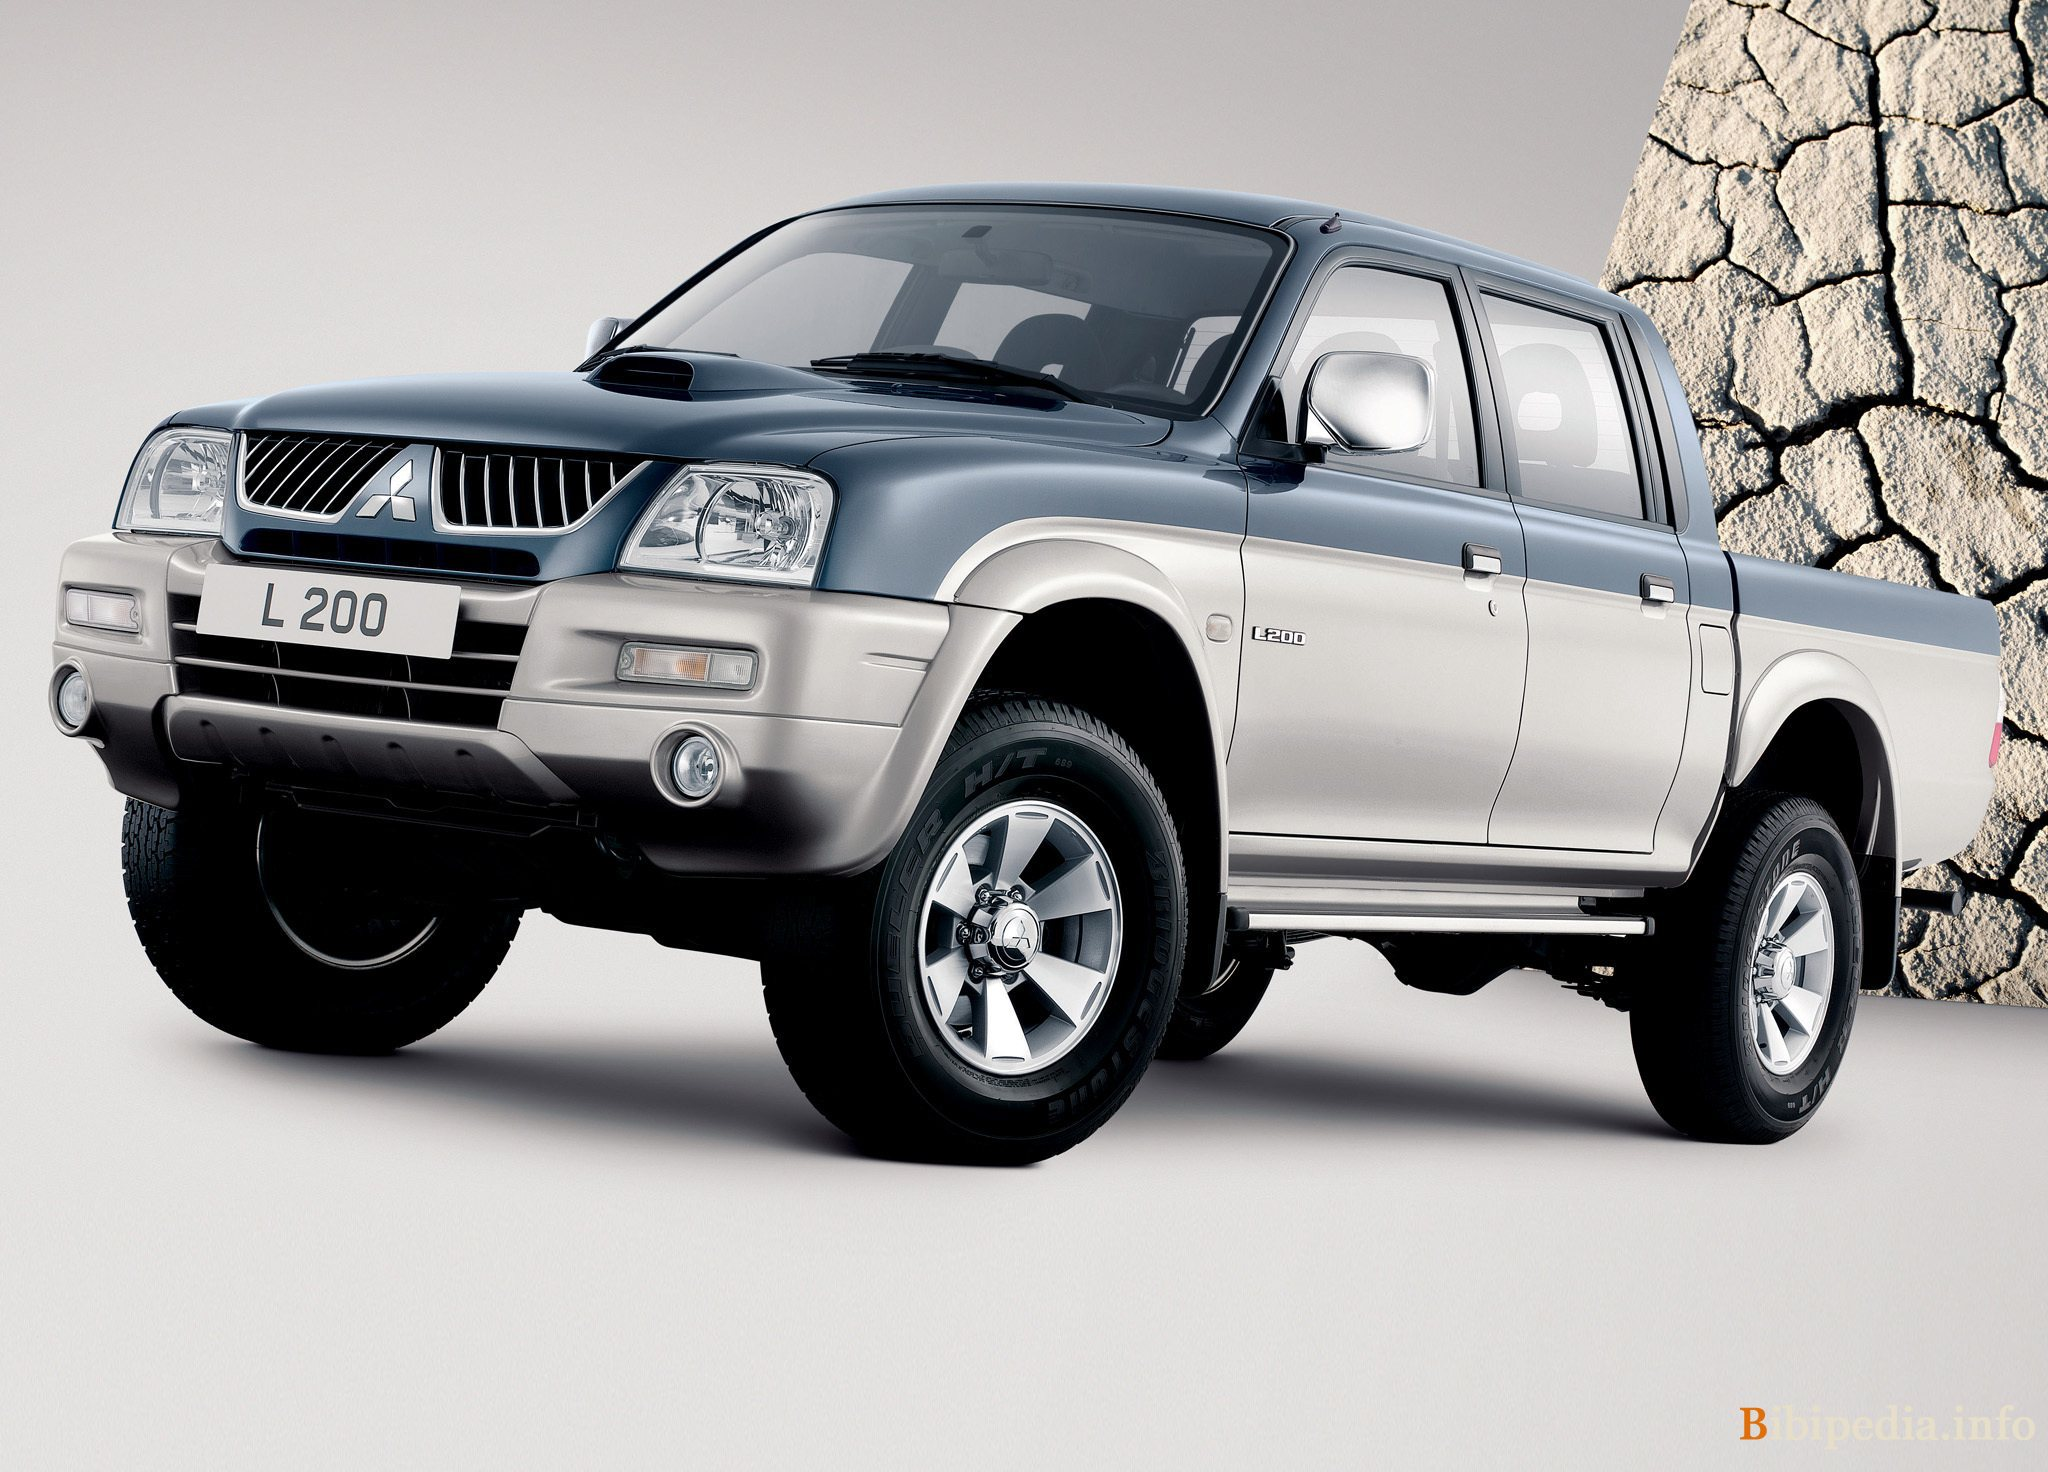 2005 Mitsubishi L200 Pictures Information And Specs